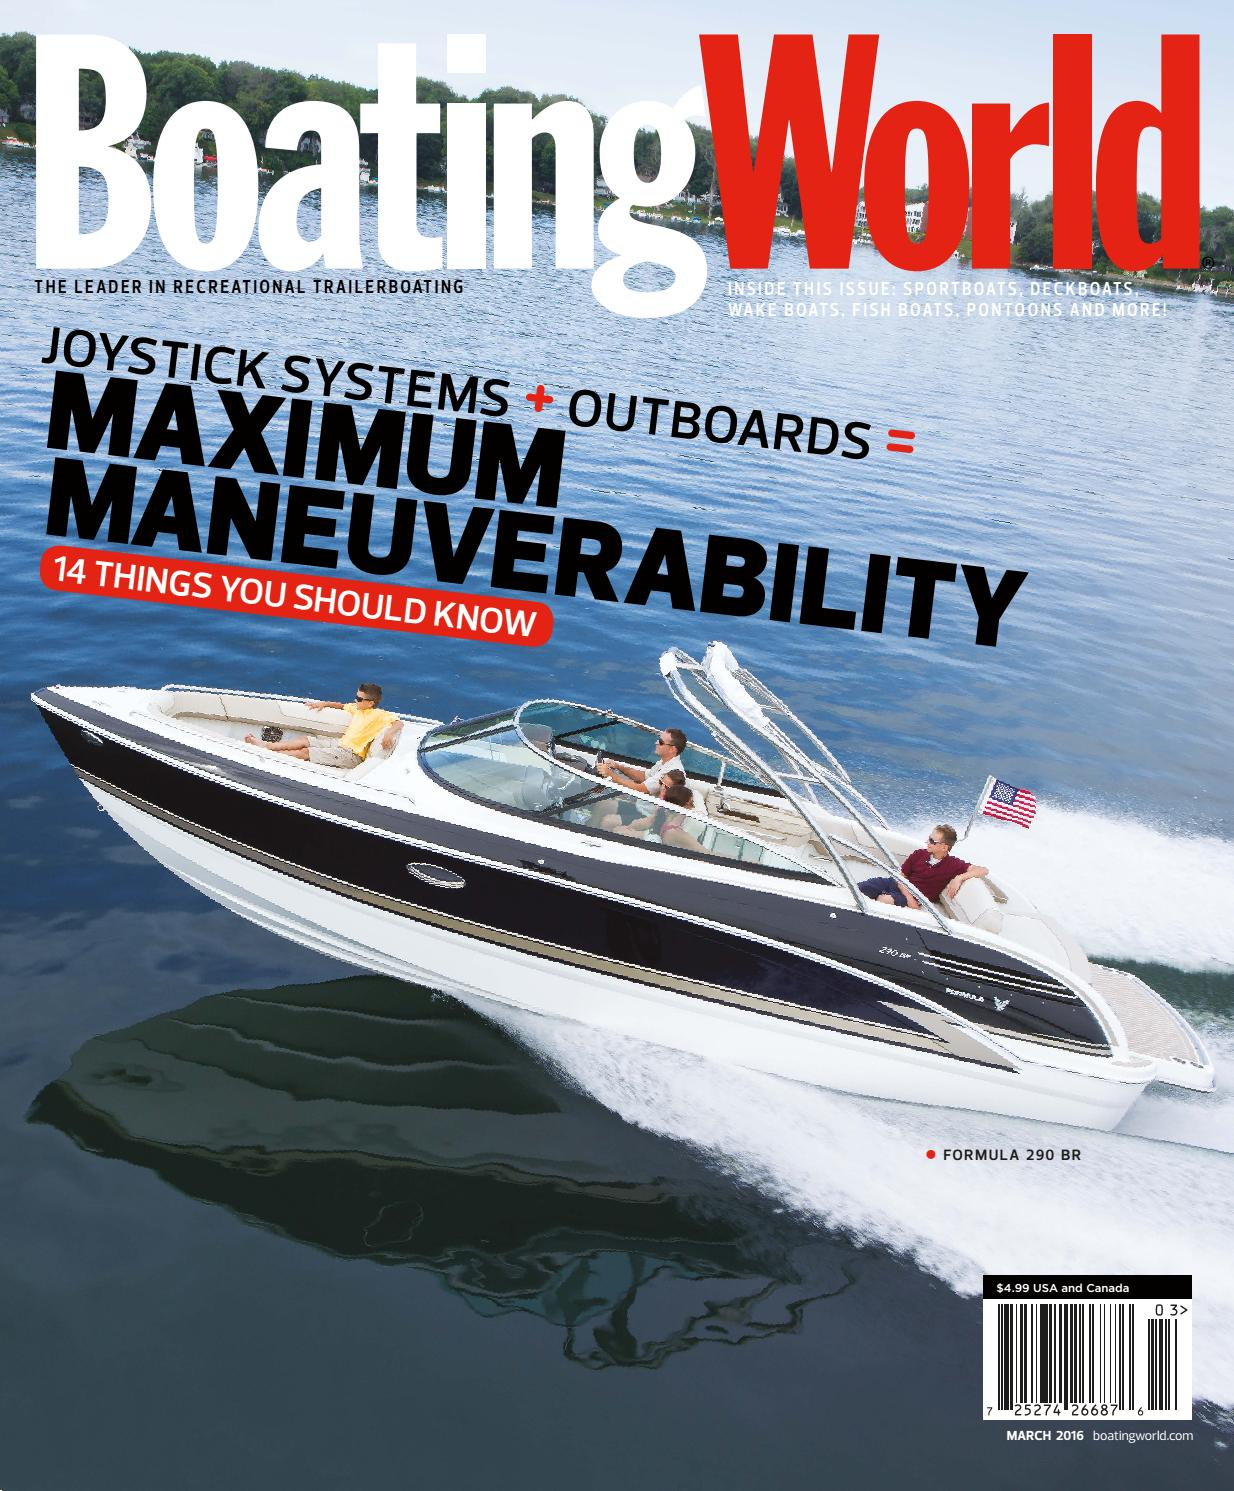 page_1 march 2016 boating world magazine by duncan mcintosh company issuu  at gsmx.co